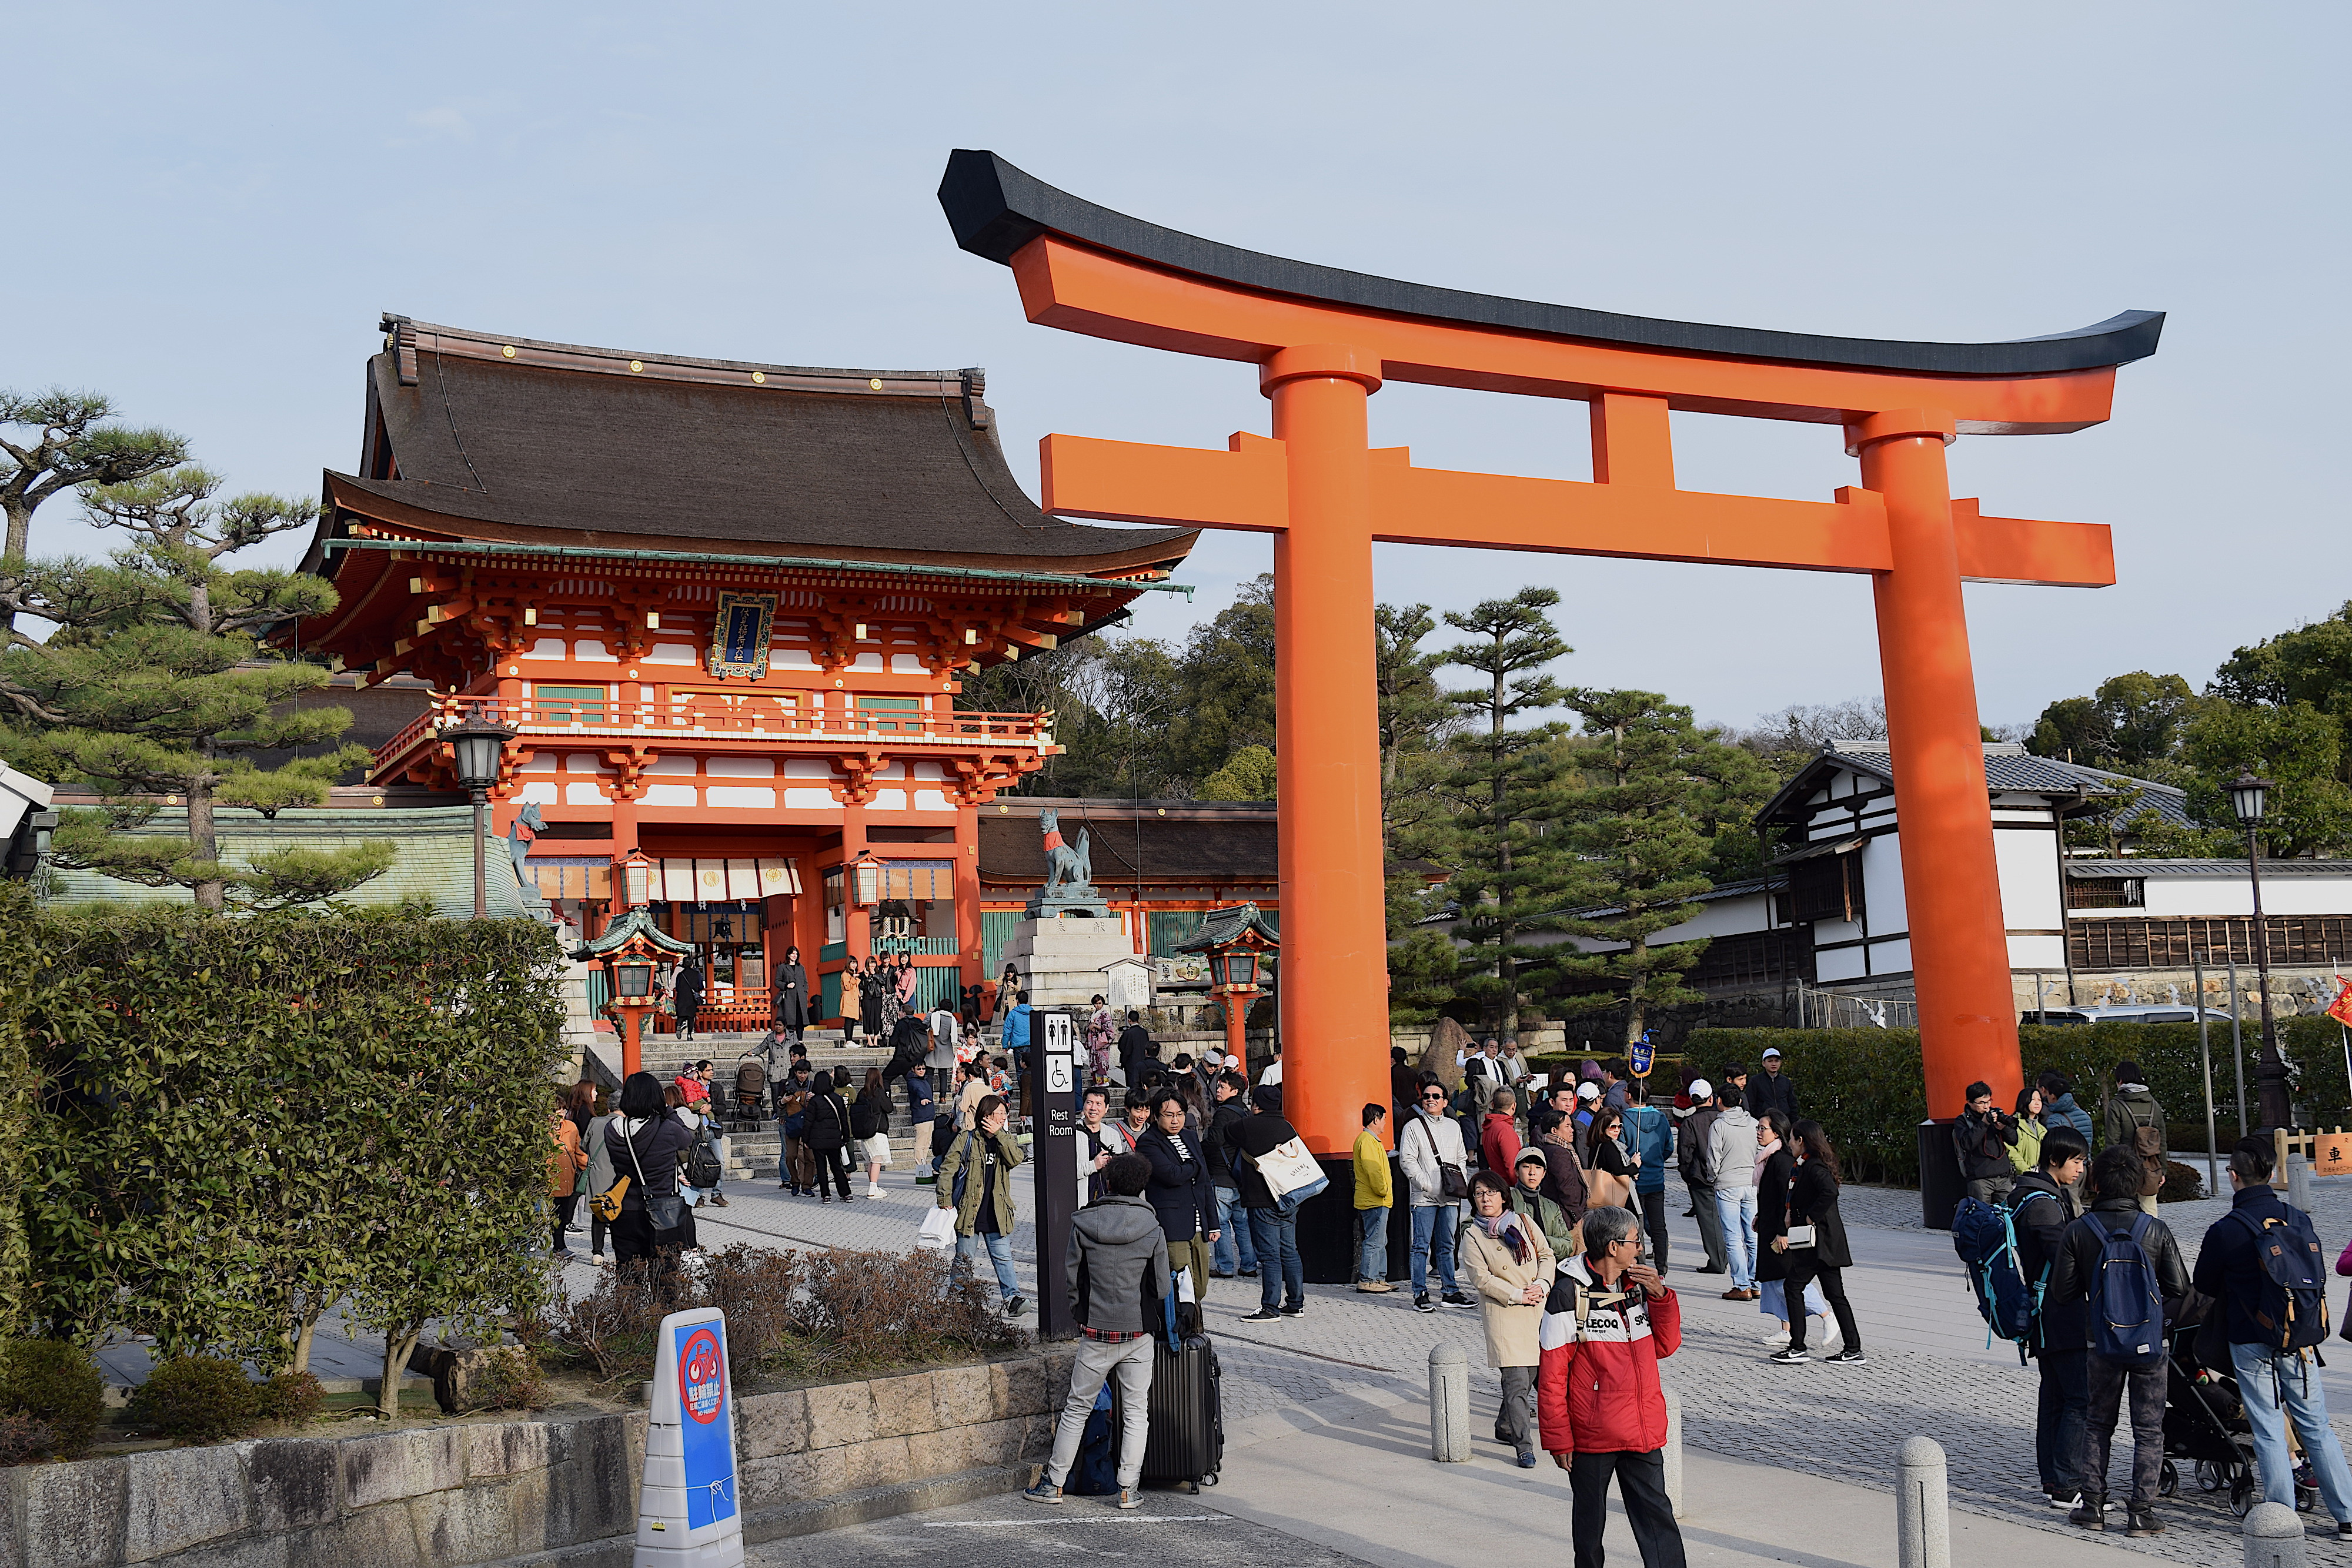 The Fushimi Inari Shrine is the largest shrine. It is famous for the large number of red gates (torii) at the site. Further described in text.